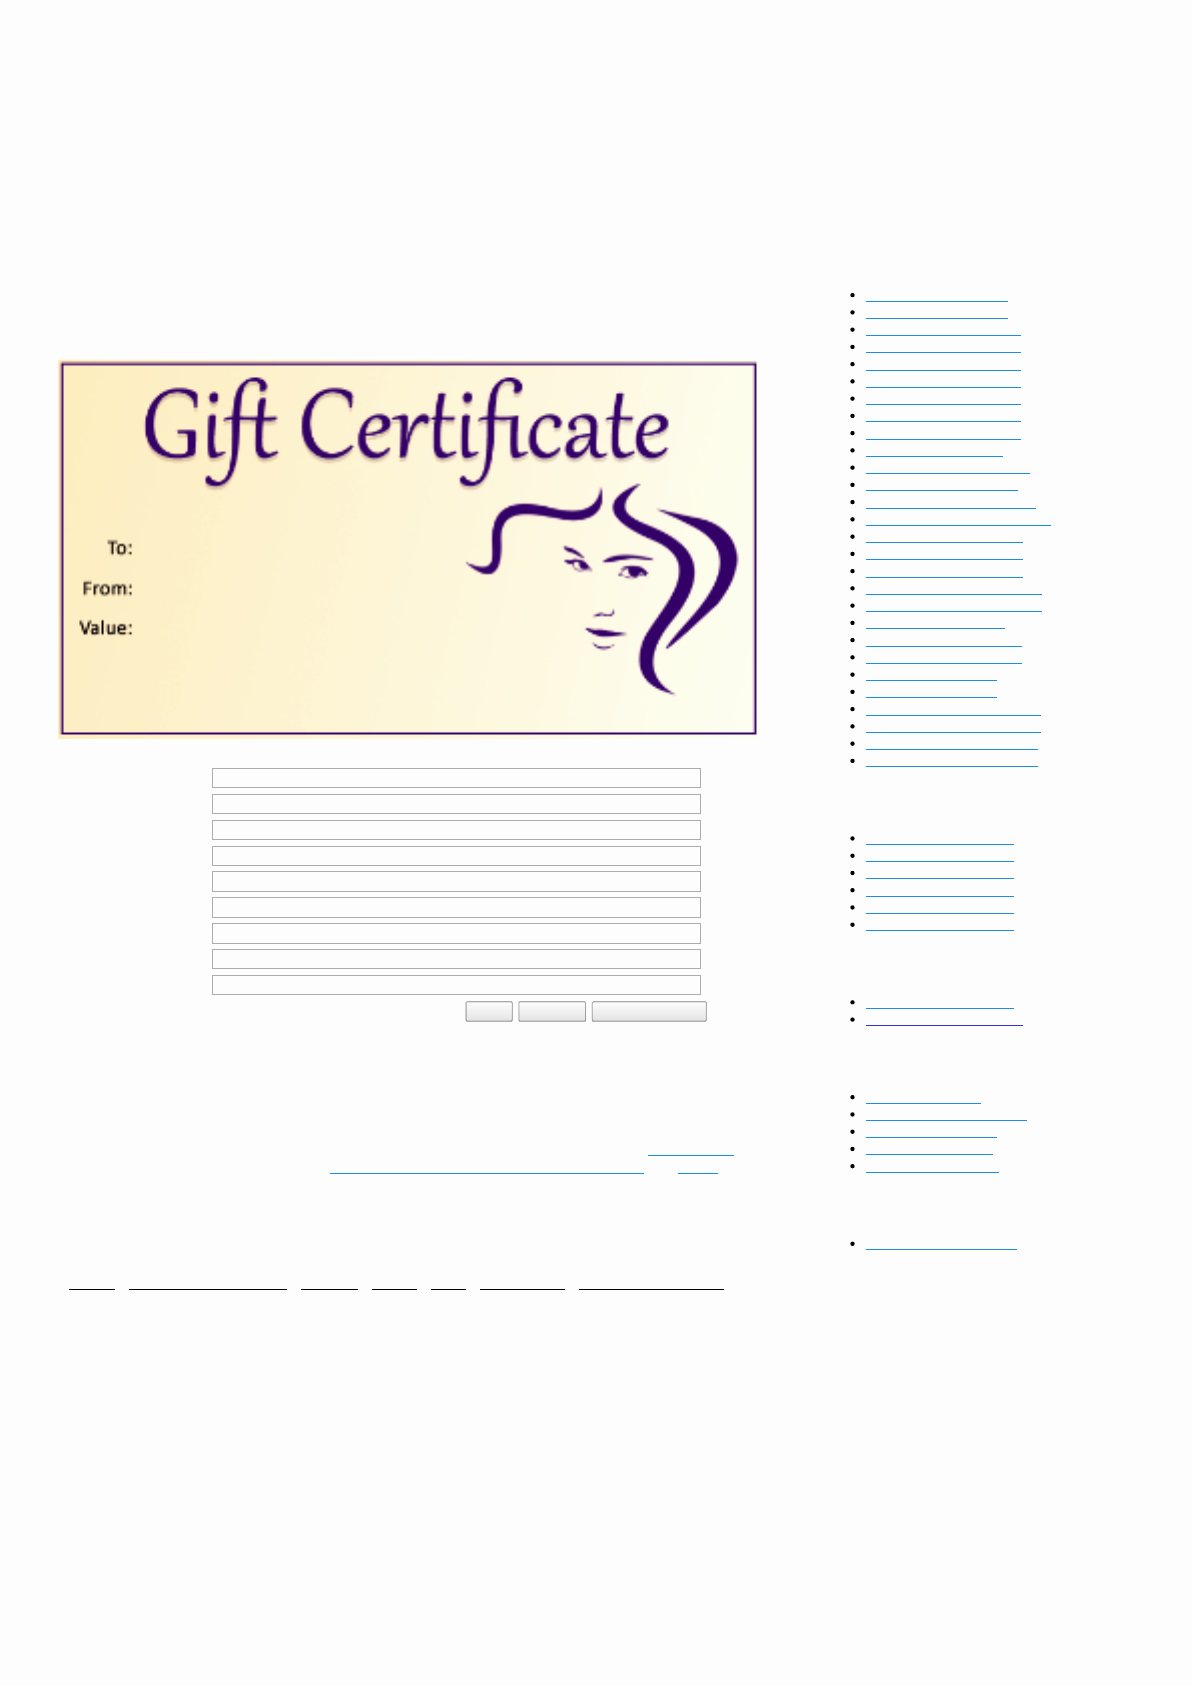 Salon Gift Certificate Template Awesome Download Hair Salon Gift Certificate Template for Free